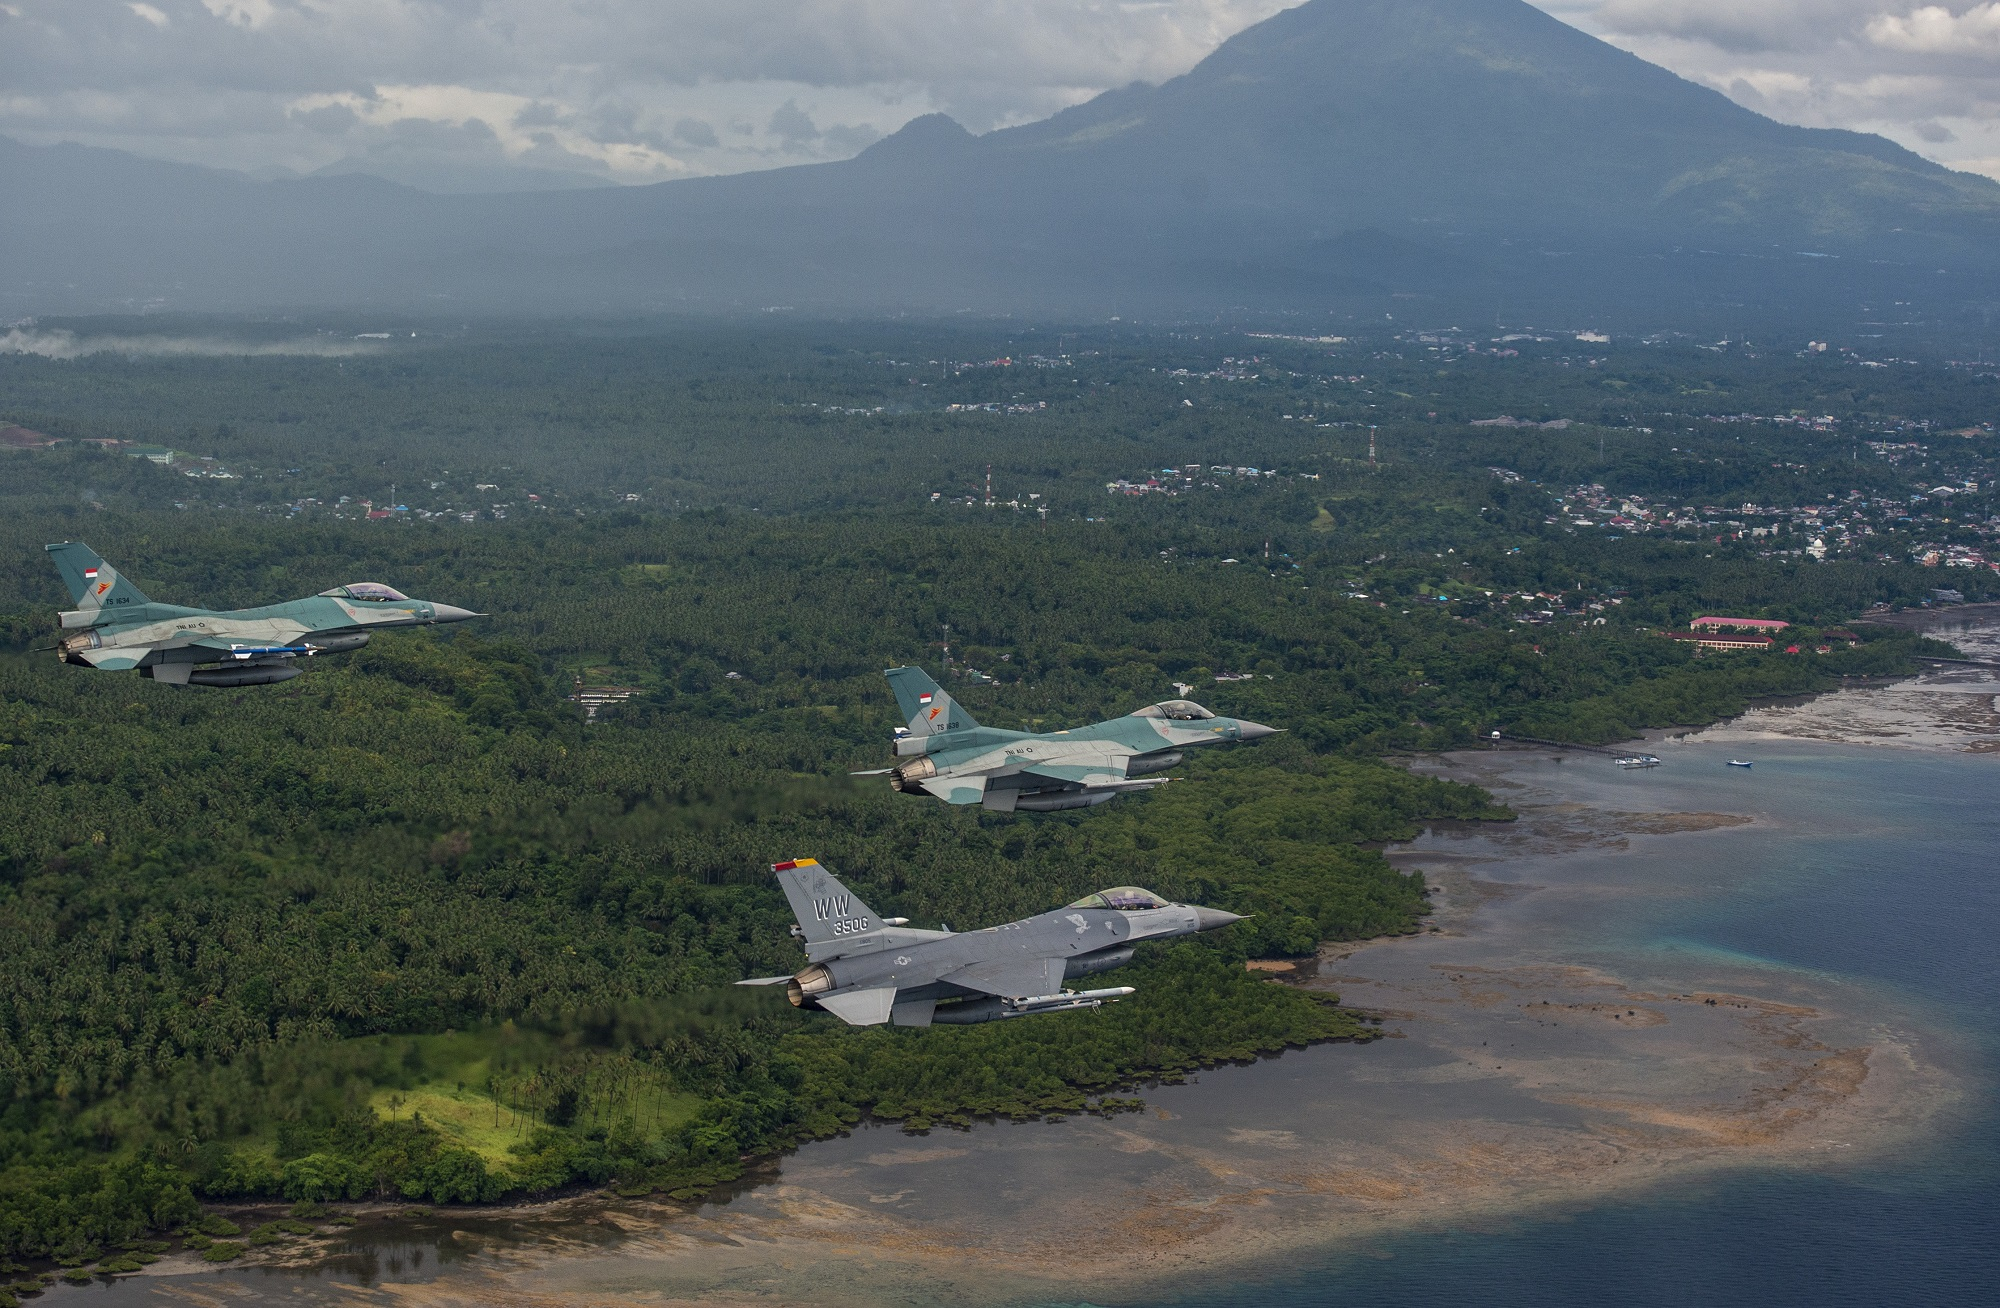 US Air Forces F-16s to Participate in Exercise Cope West 2021 in Indonesia